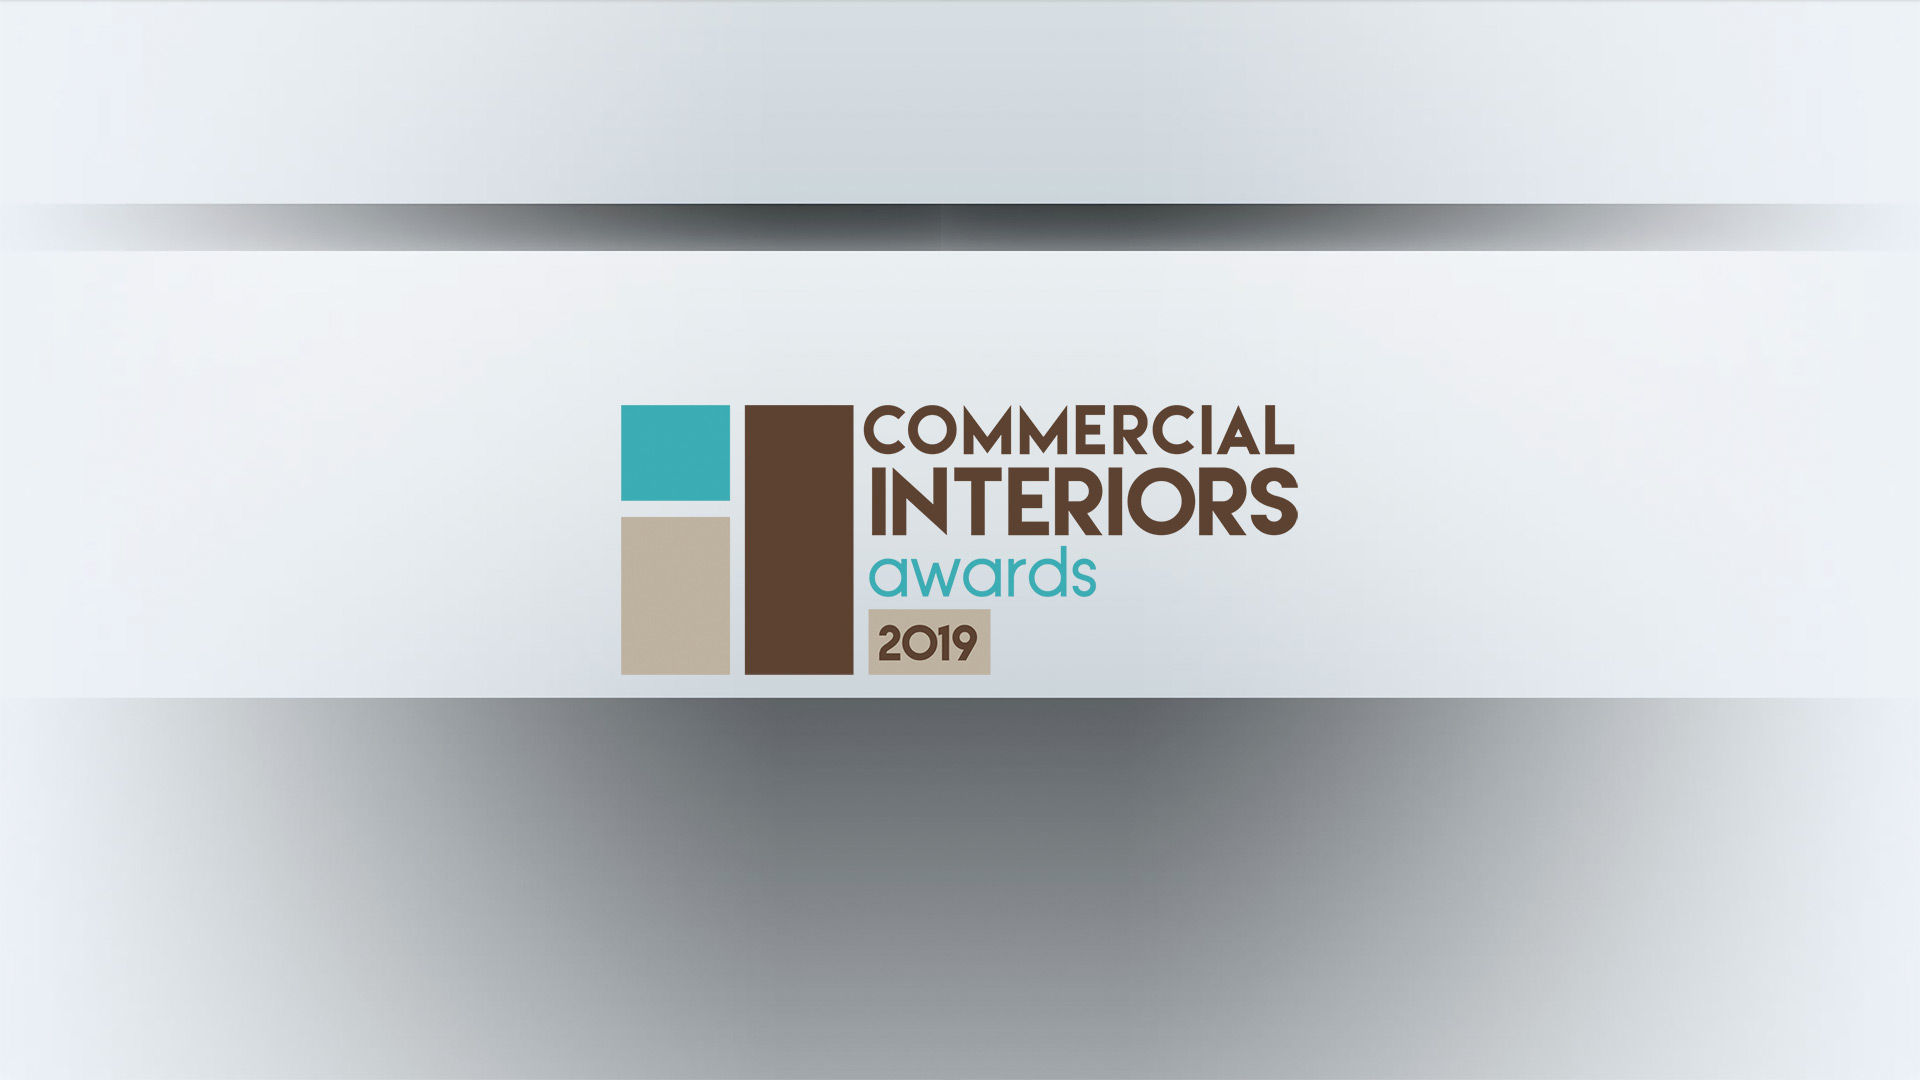 Commercial Interiors Awards 2019